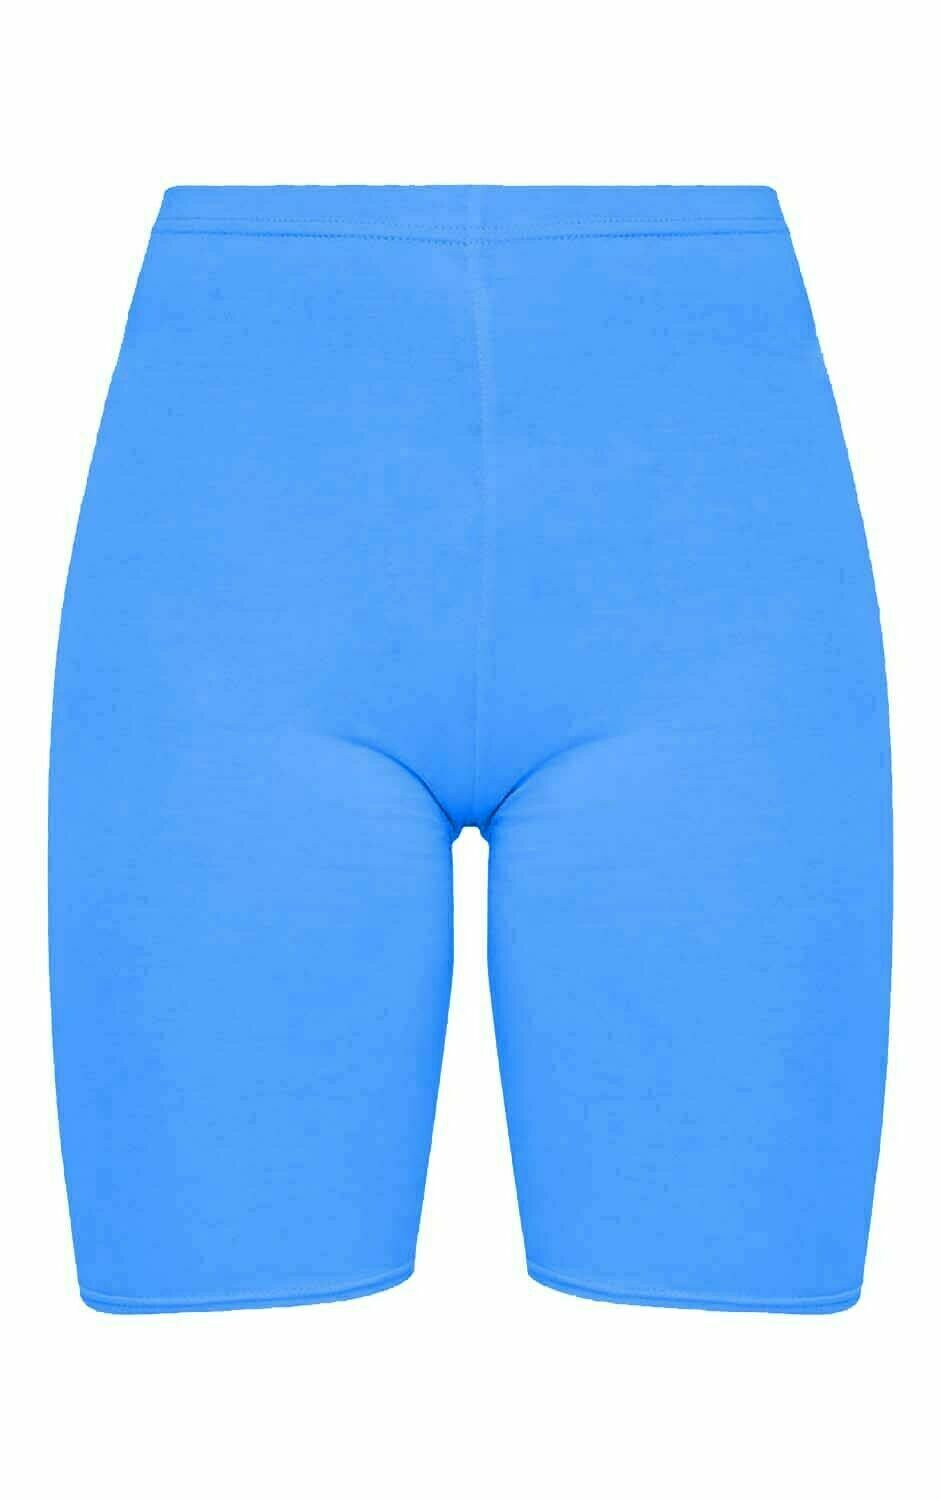 Crazy Chick Women Turquoise Microfibre Cycling Shorts